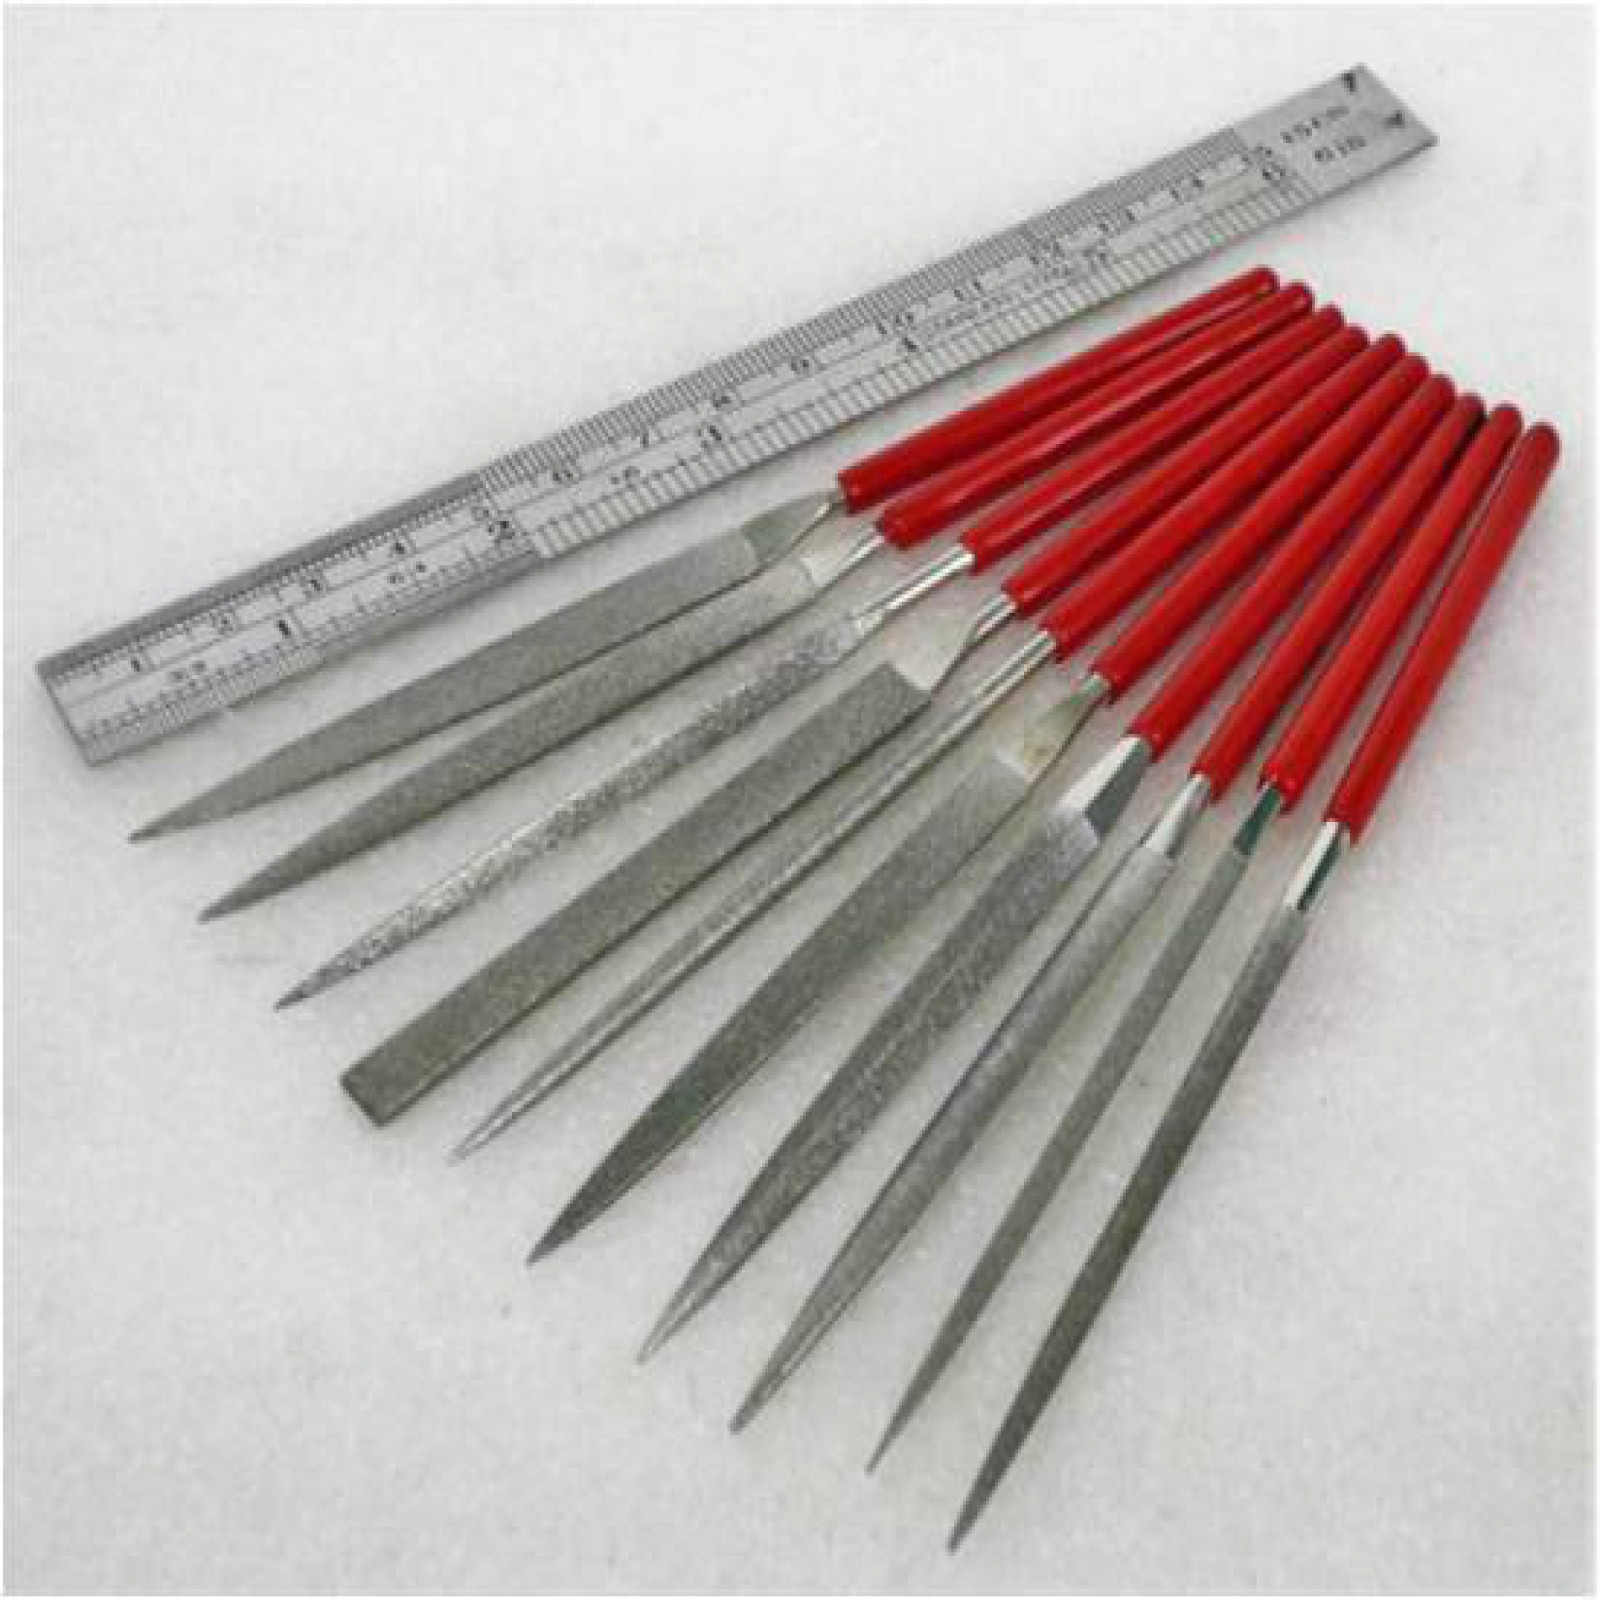 DIAMOND COATED NEEDLE FILE SET, 10 PCS 5-1/2